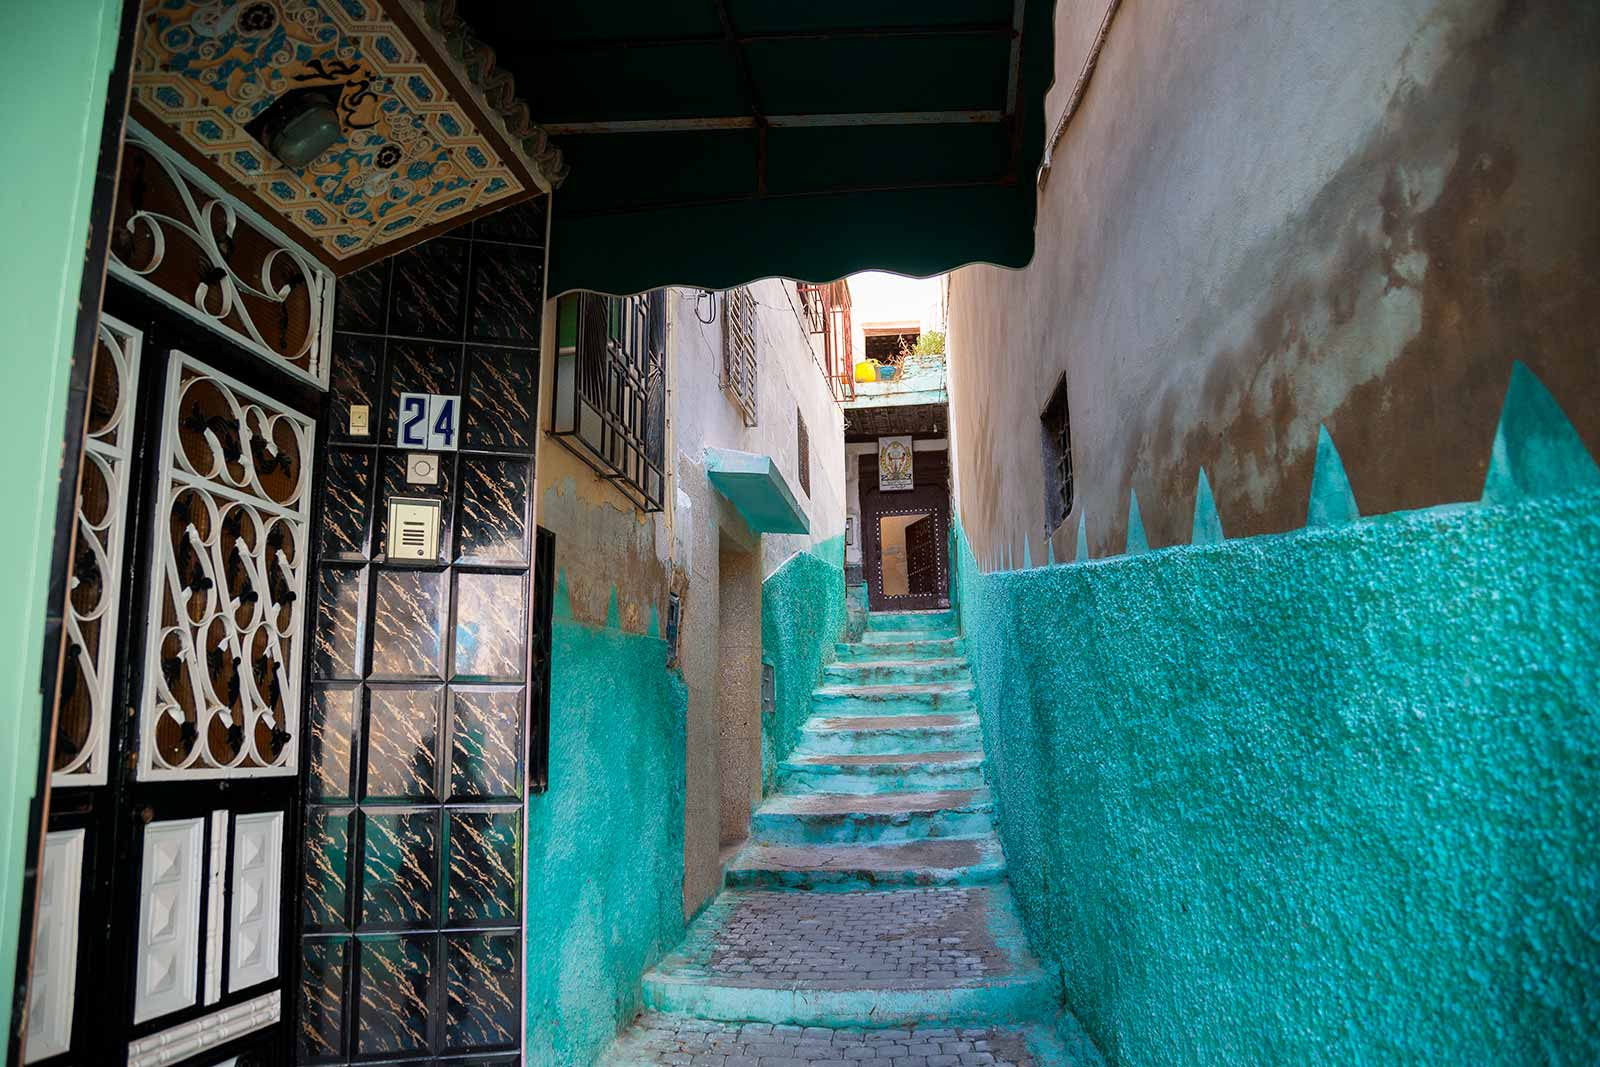 The sheer endless streets of Moulay Idriss reminded us of colourful Chefchaouen, but also a little bit of the Medina of Marrakech.